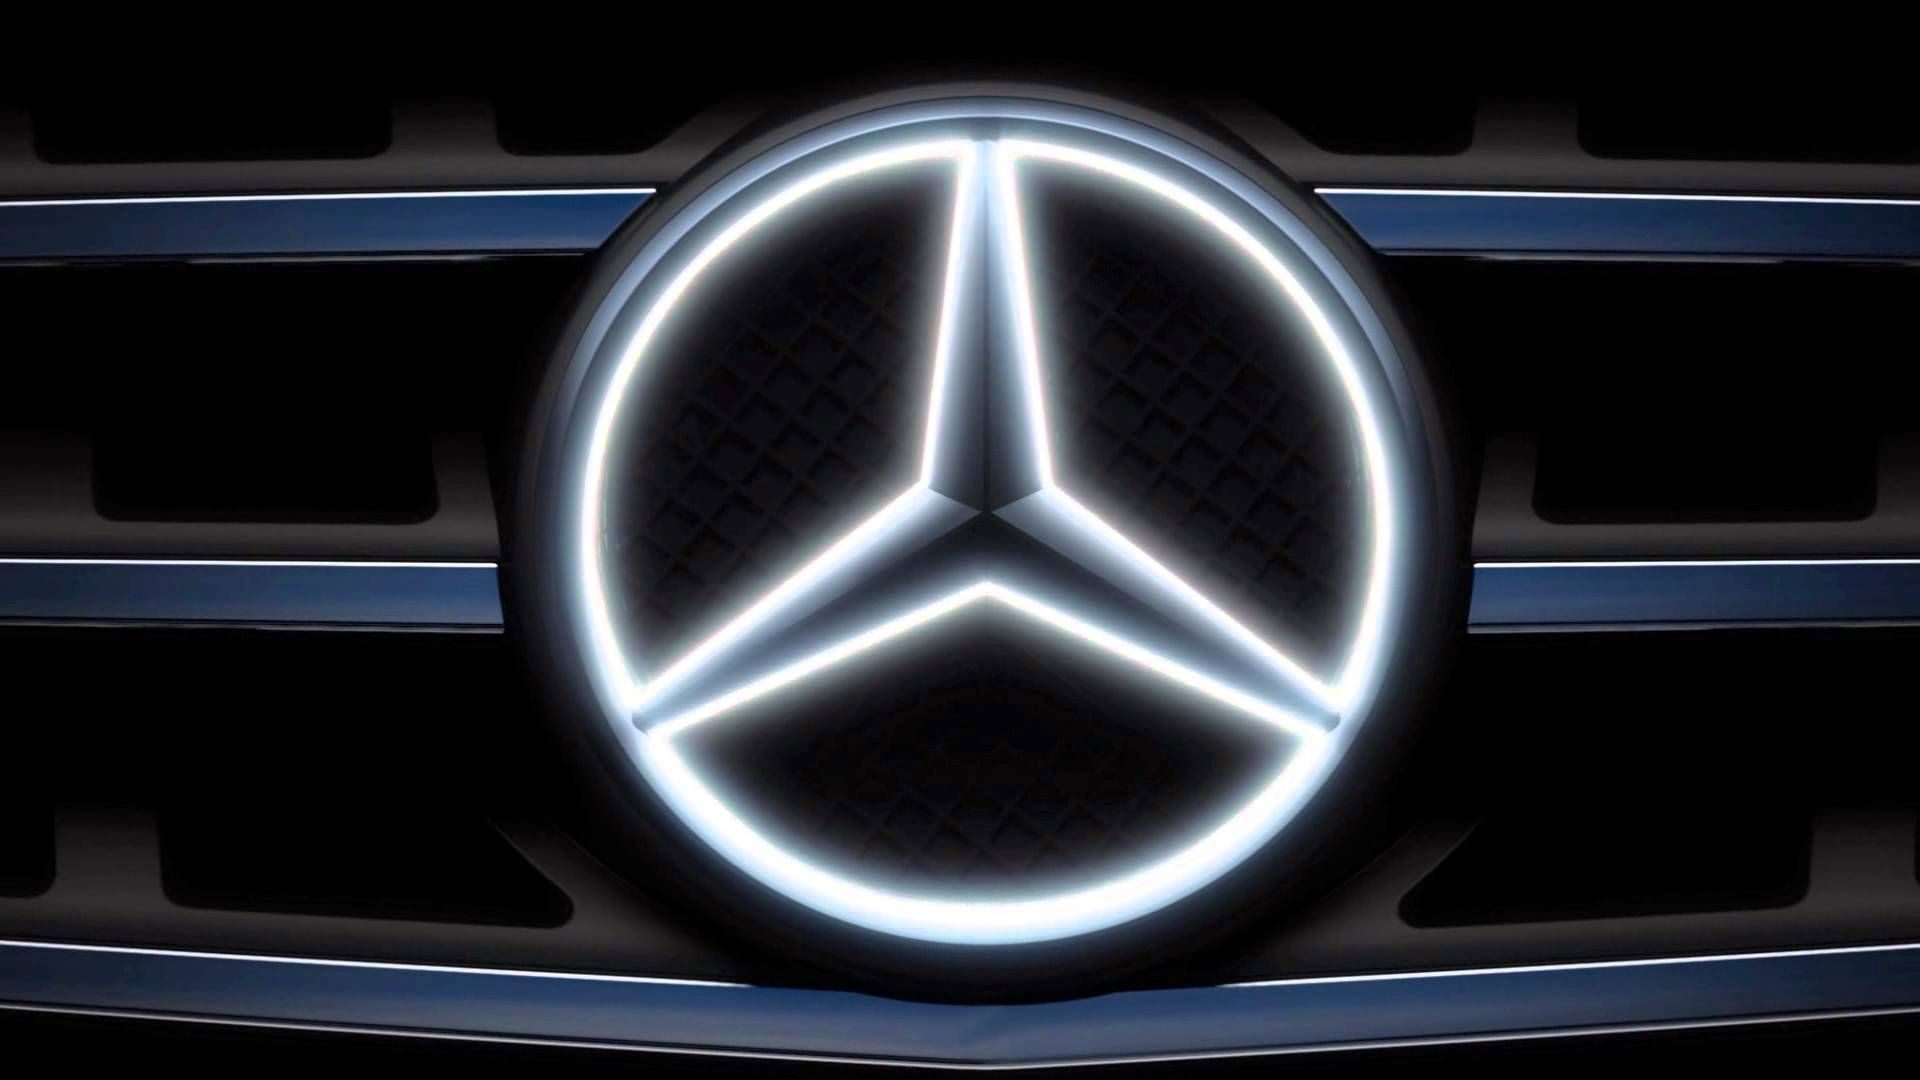 Glowing 3 Pointed Mercedes Benz Star The 3 Pointed Star Stands